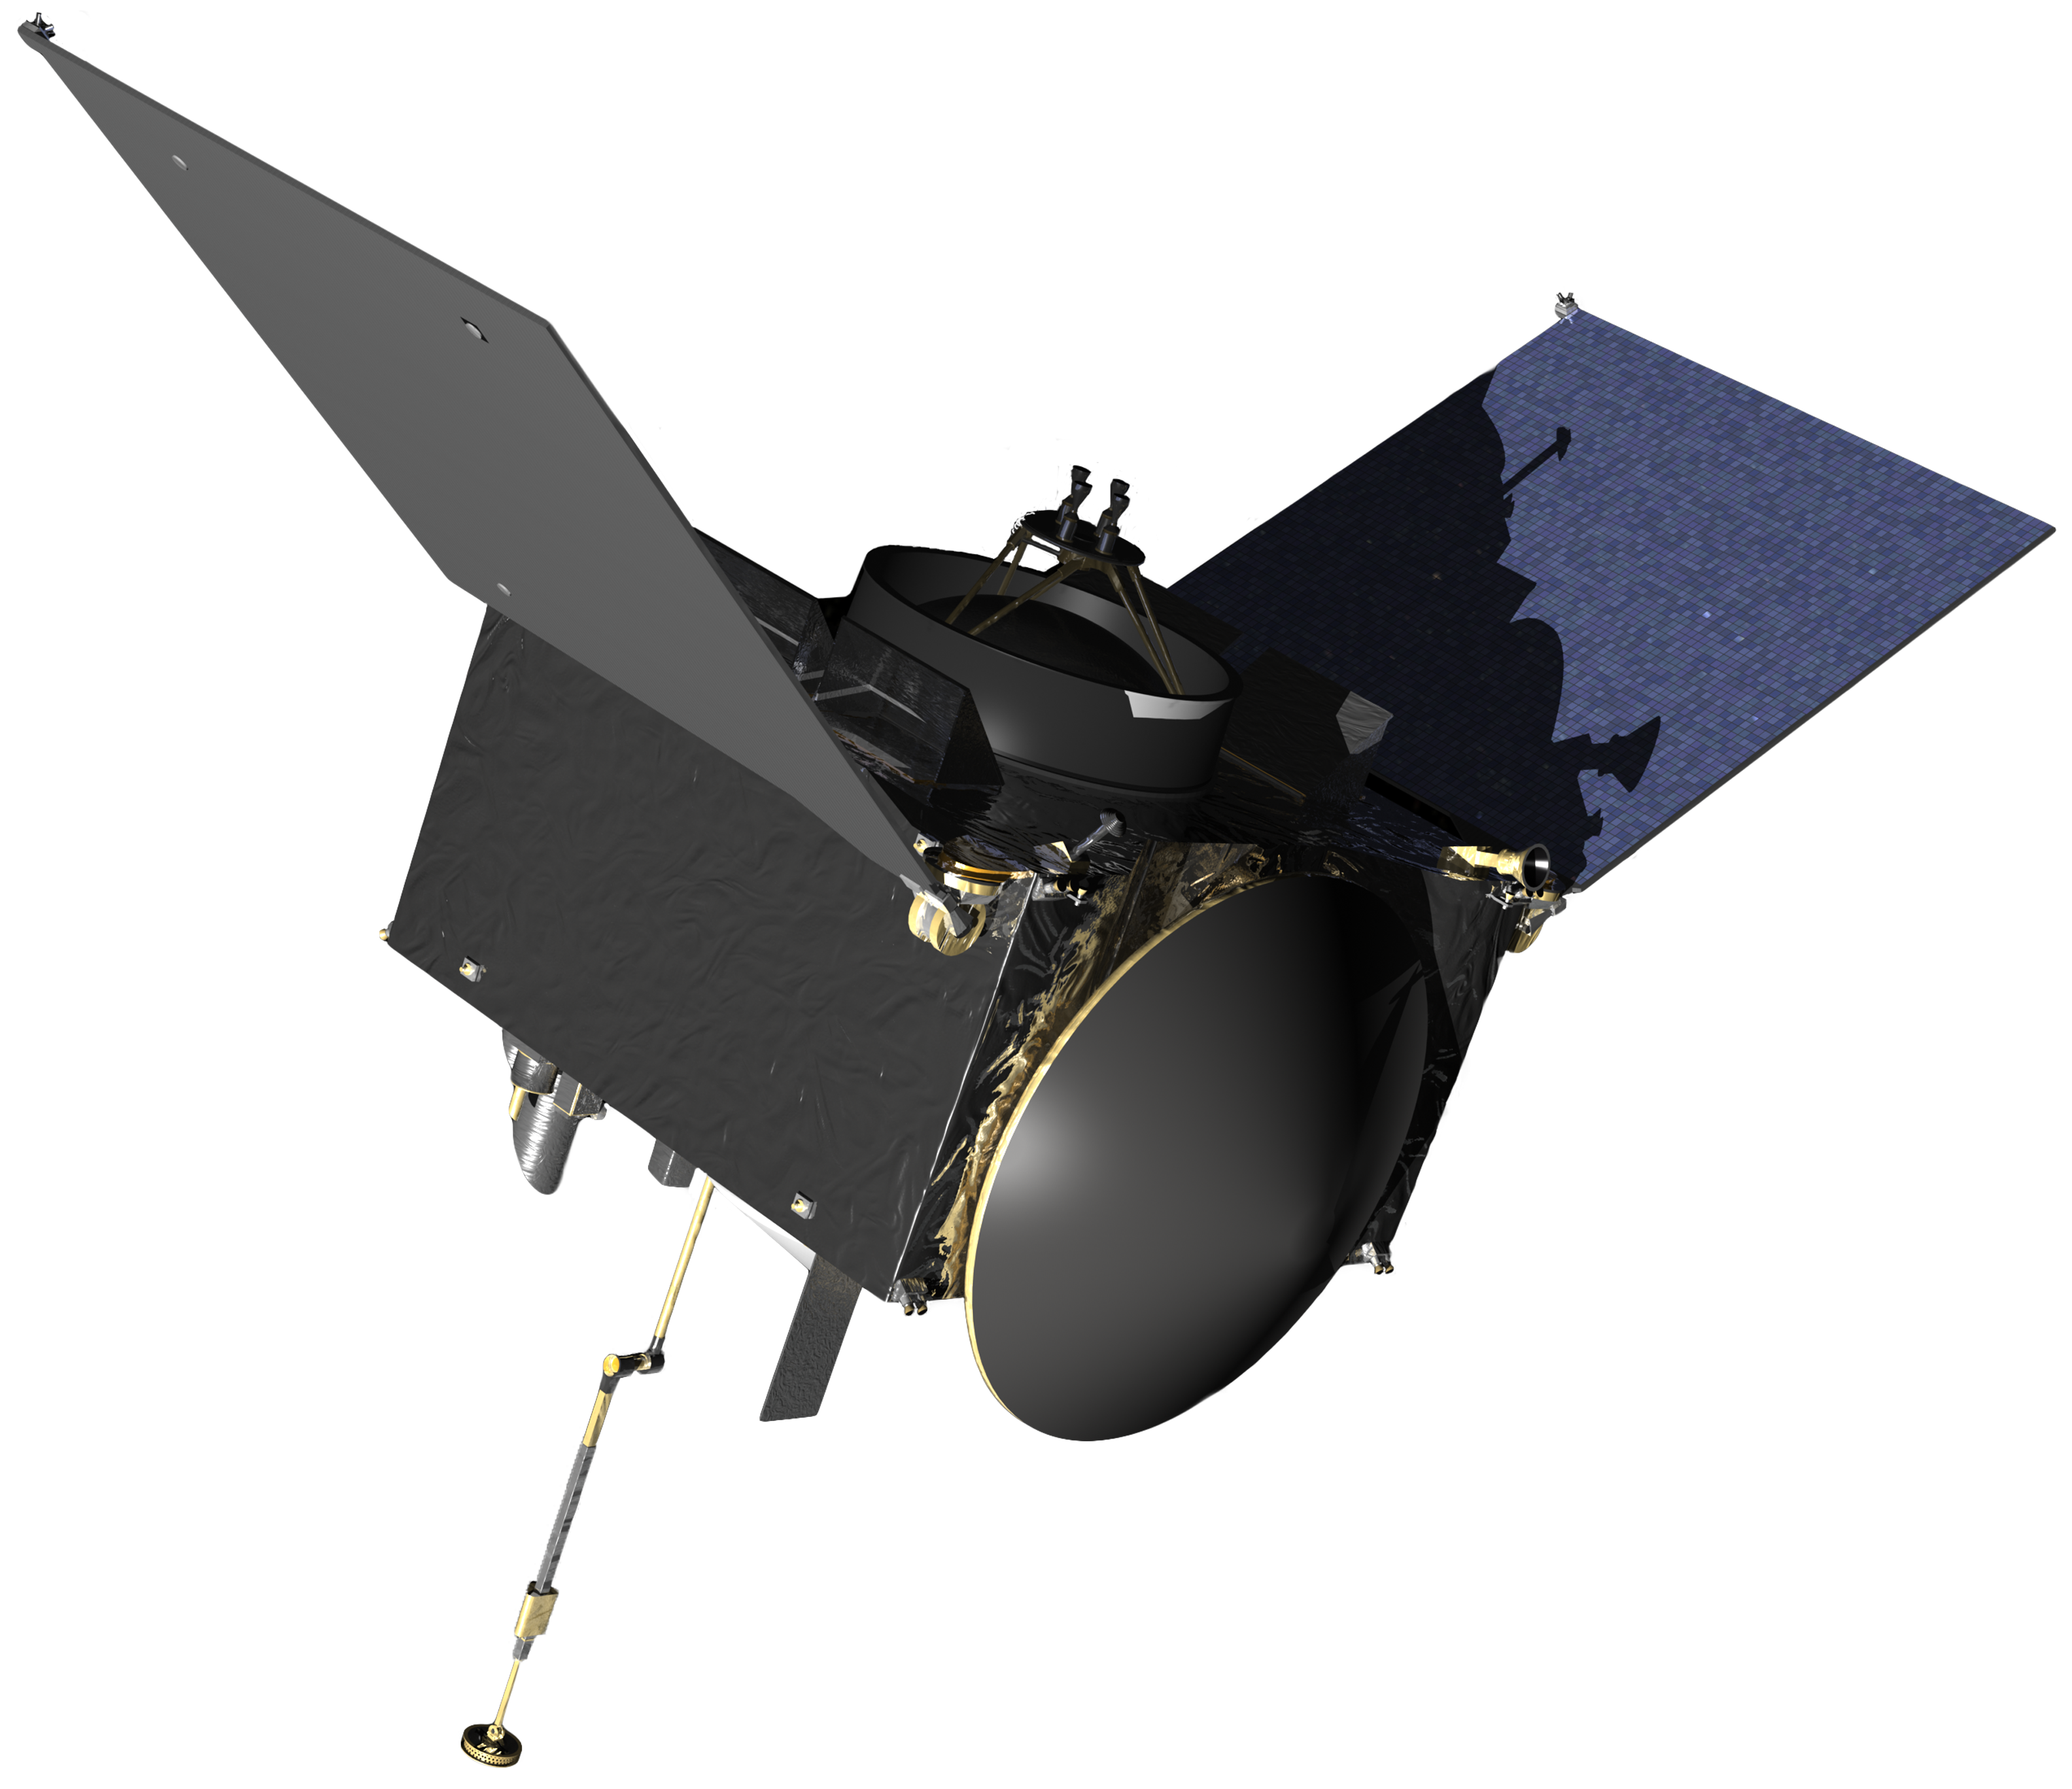 Spacecraft Png image #40891